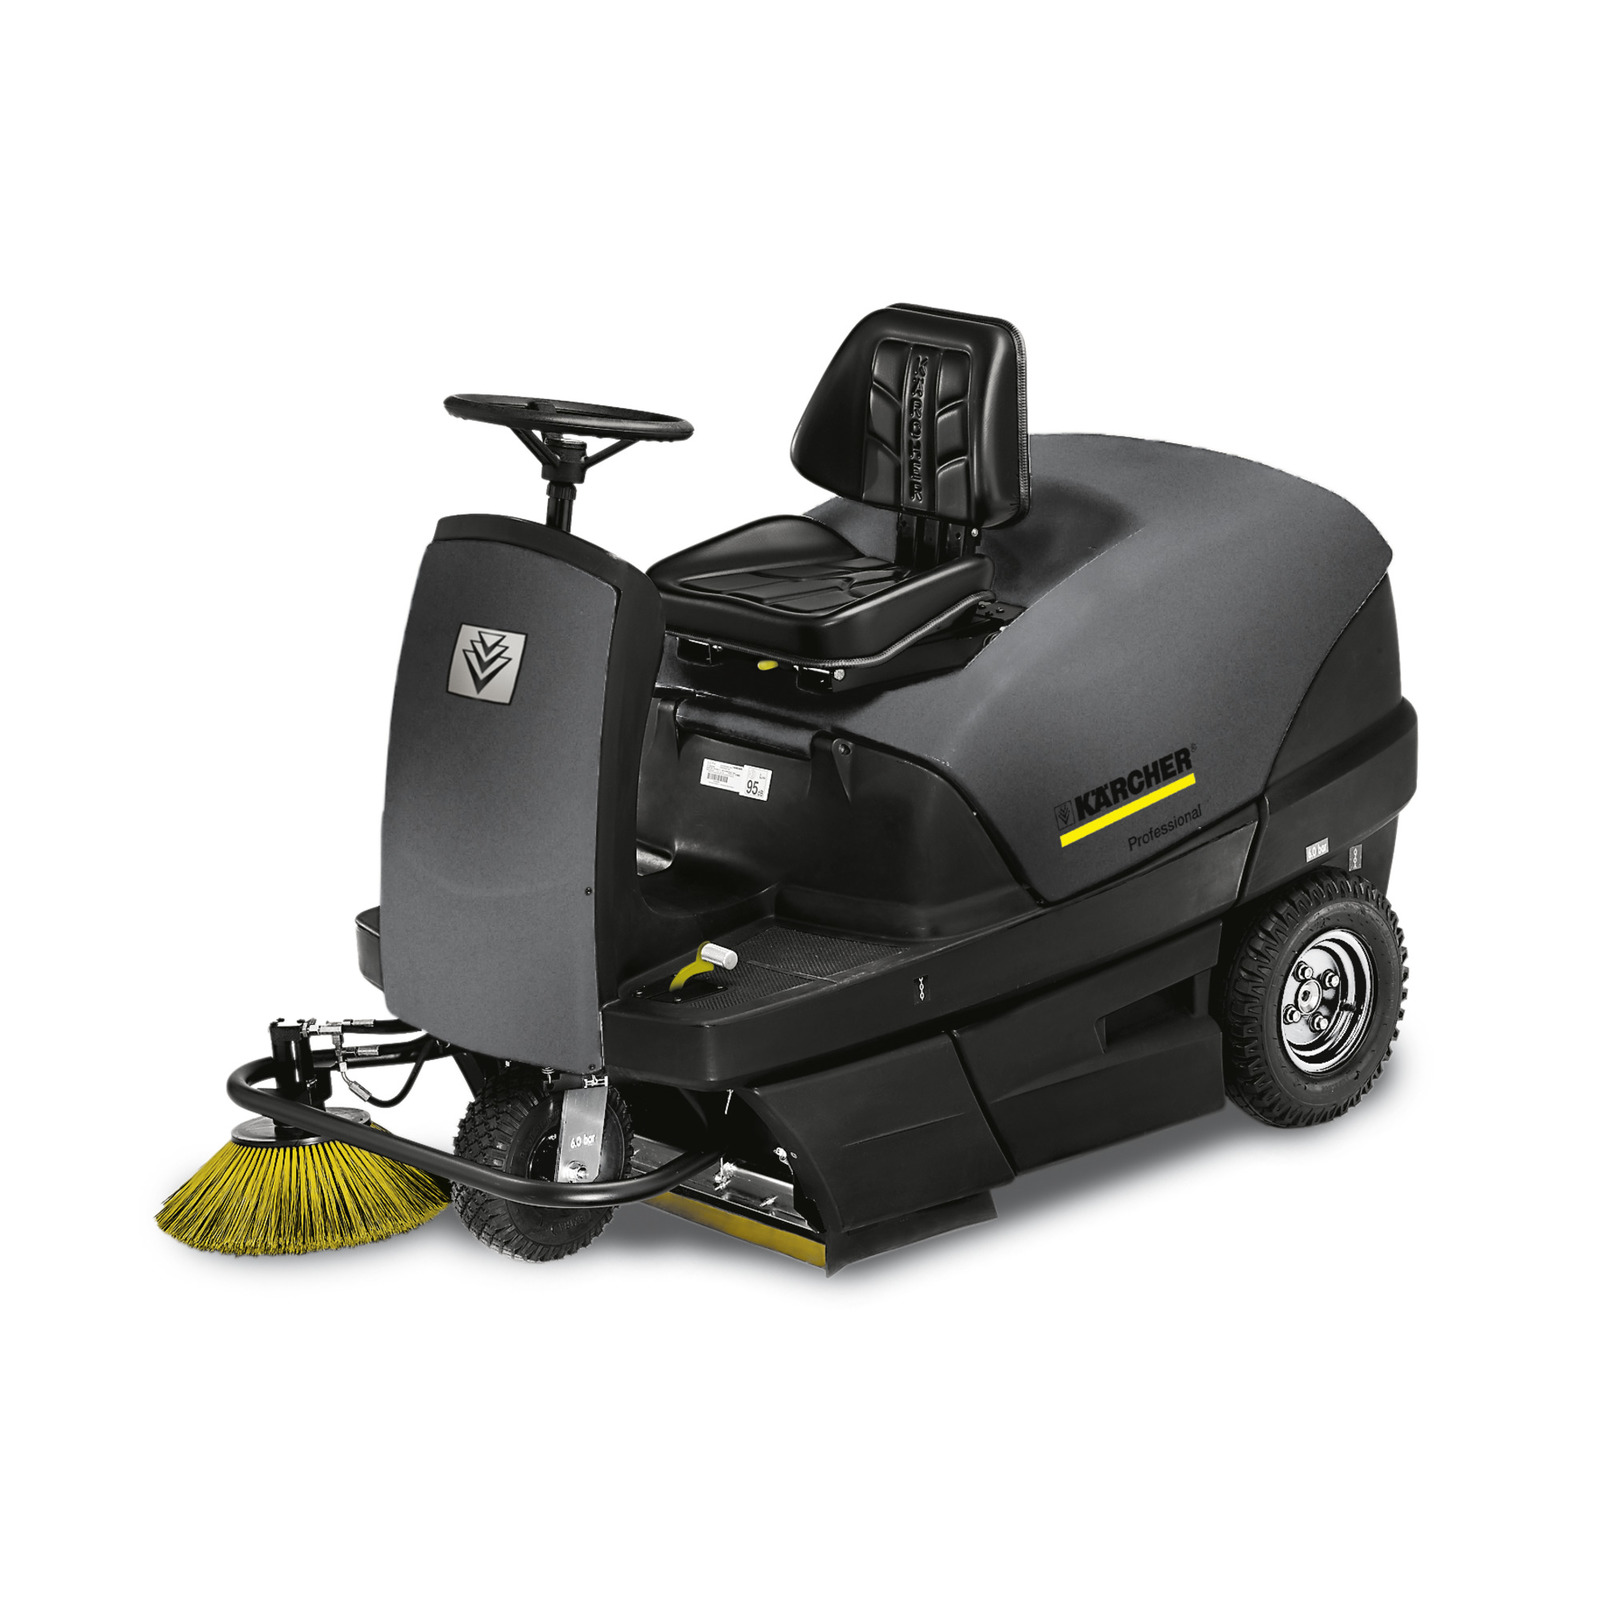 Karcher Medium Ride on Sweepers KM 100/100 R D